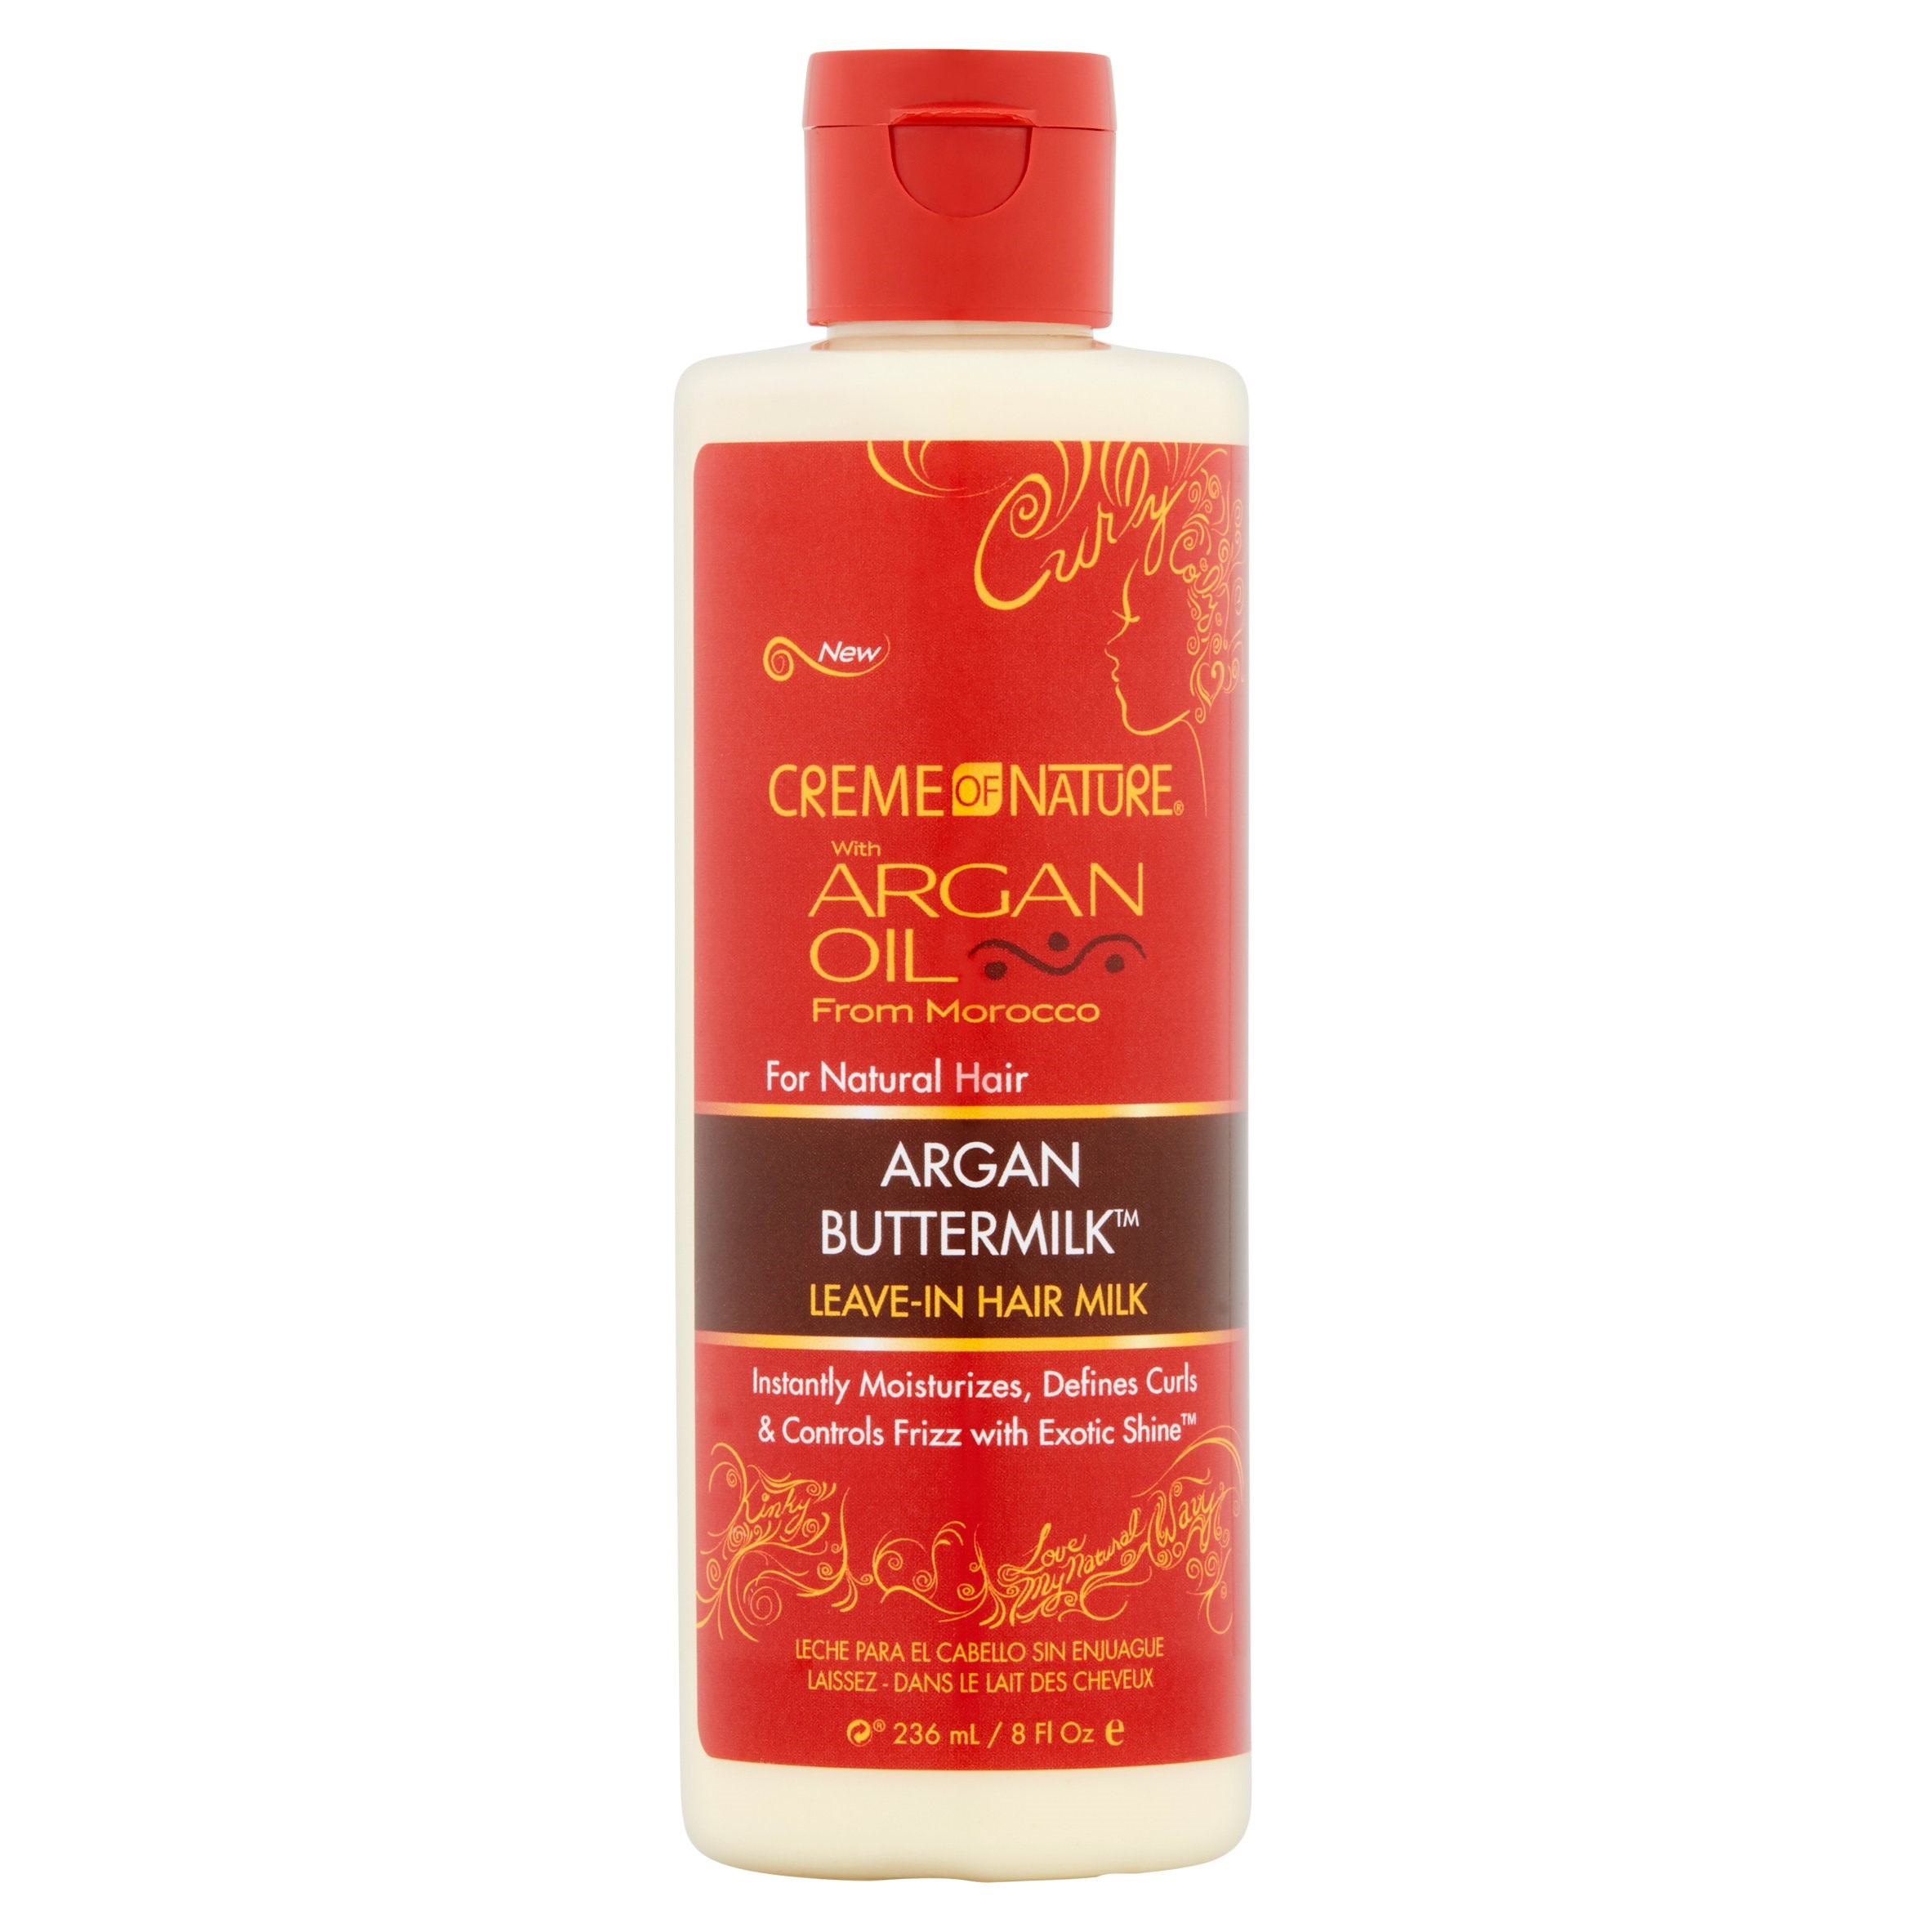 Creme Of Nature Argan Oil Argan Buttermilk Leave-In Hair Milk, 8.0 fl oz